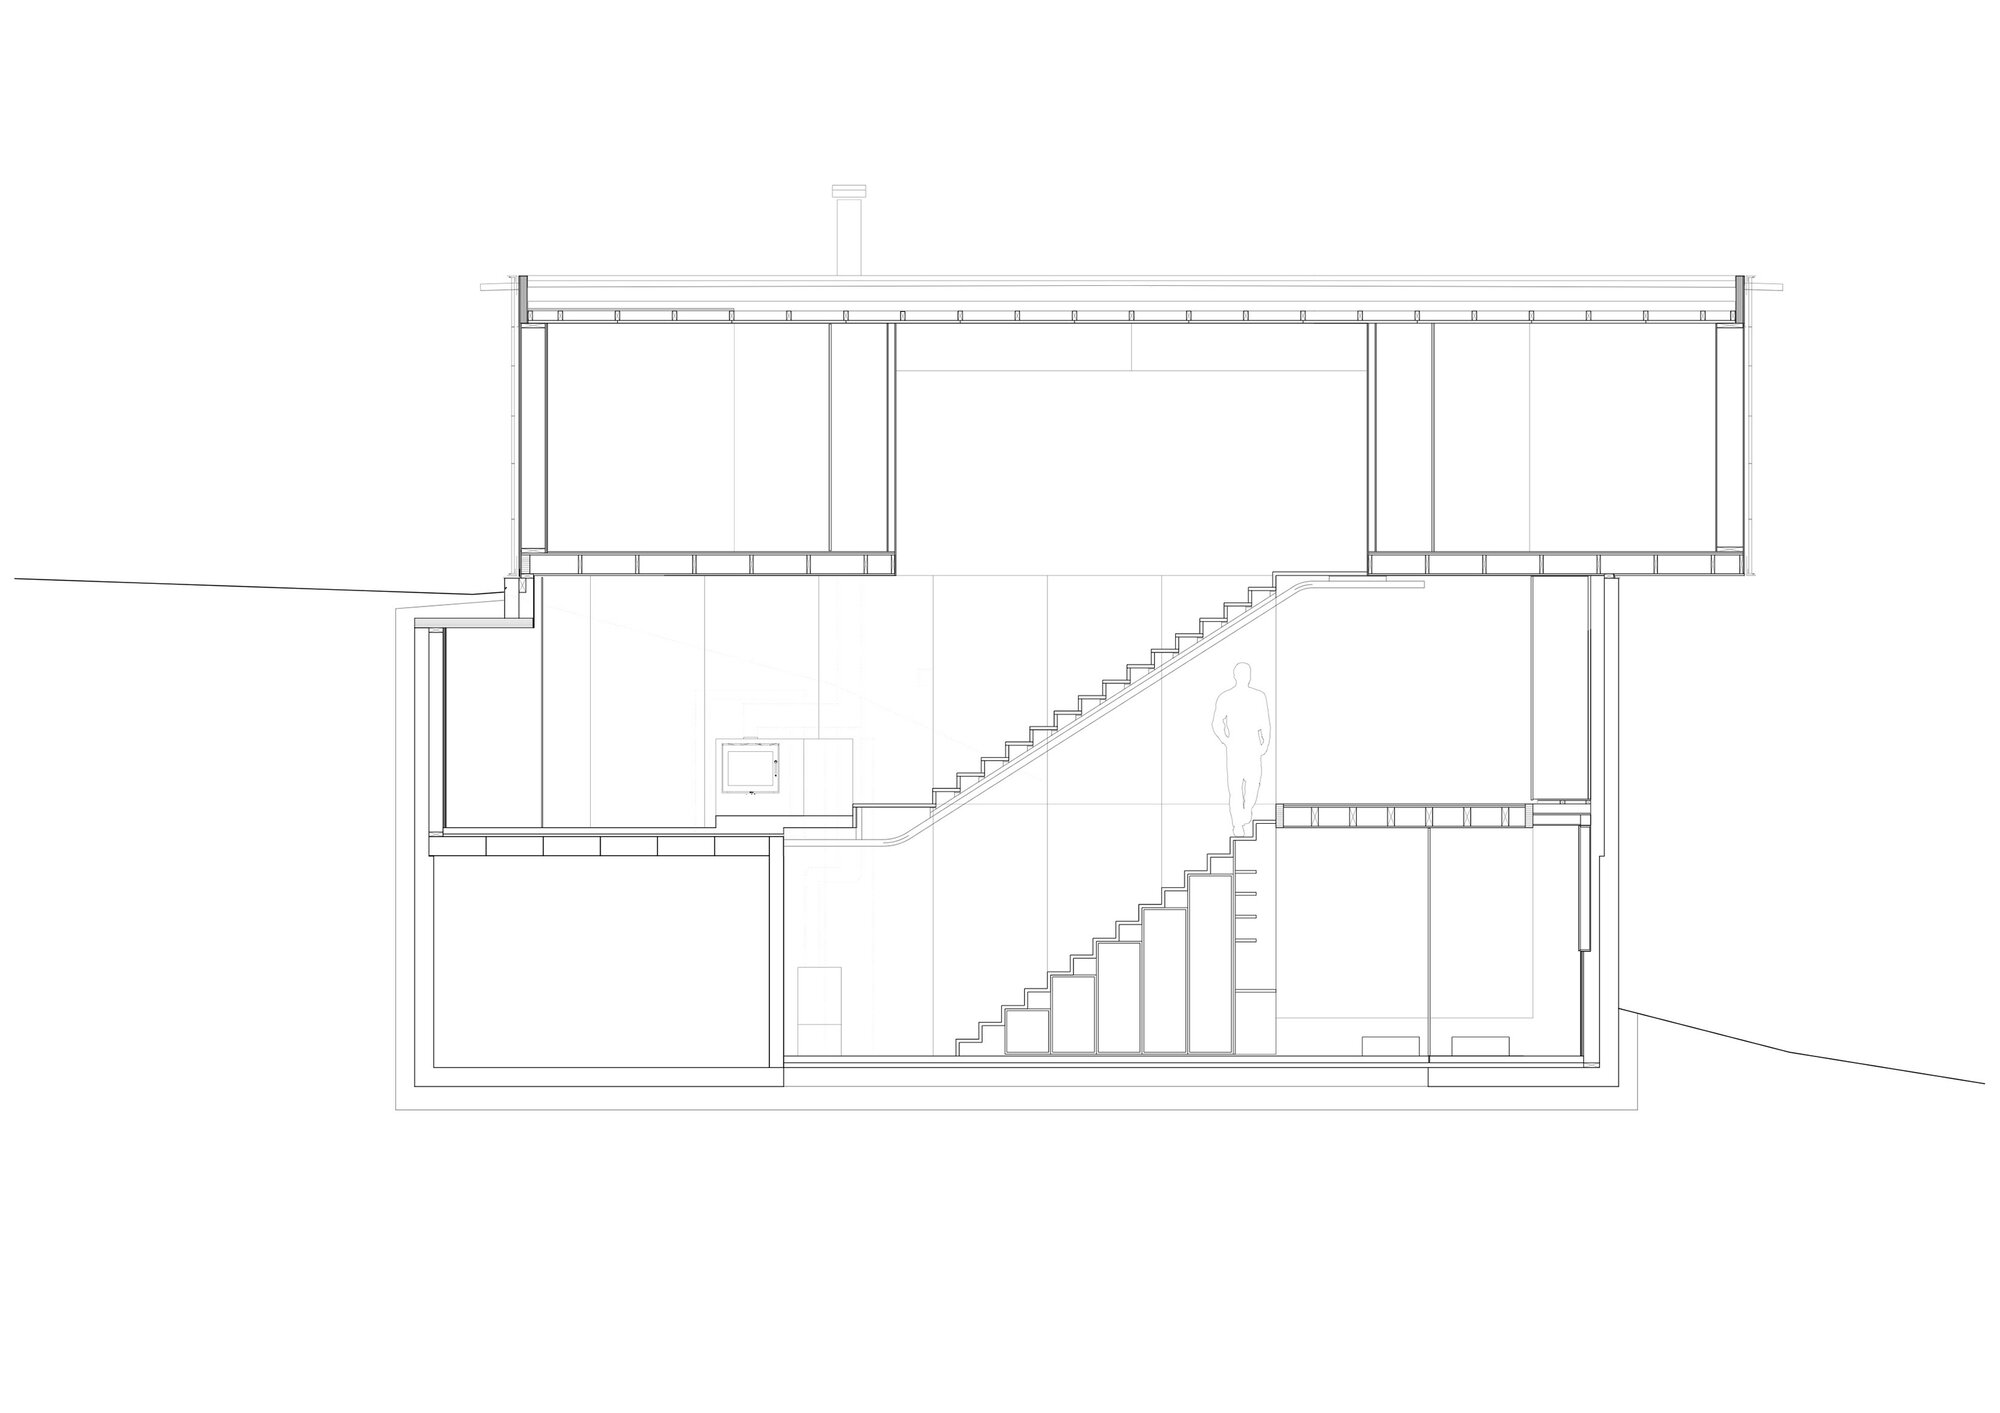 House Sømme in Norway by Knut Hjeltnes - Small House Oslo - Cross Section - Humble Homes